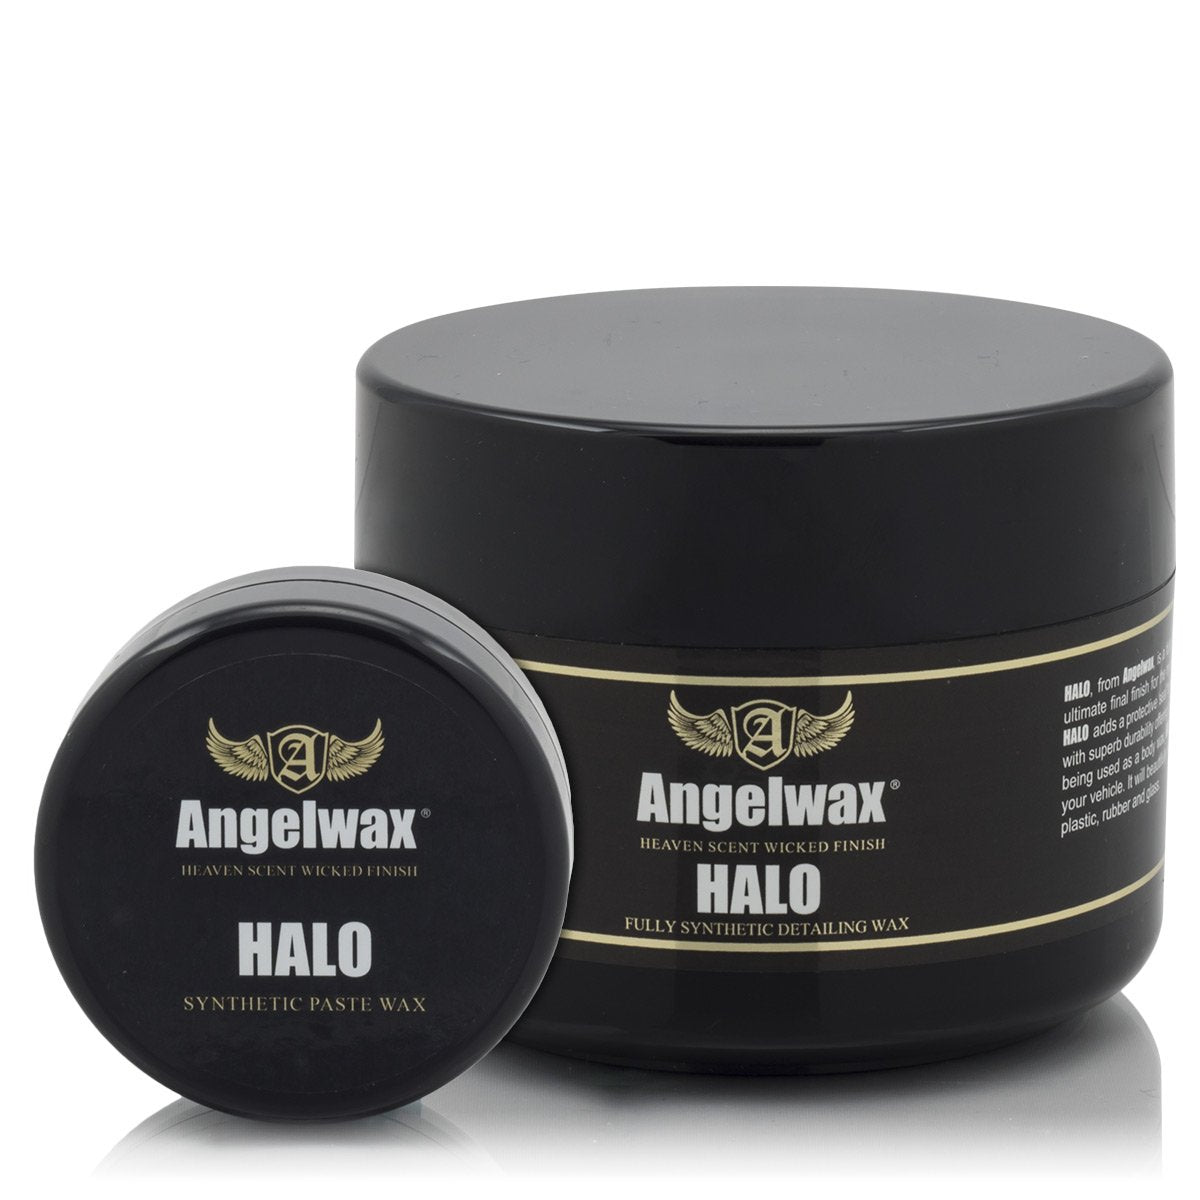 Angelwax Halo Wax